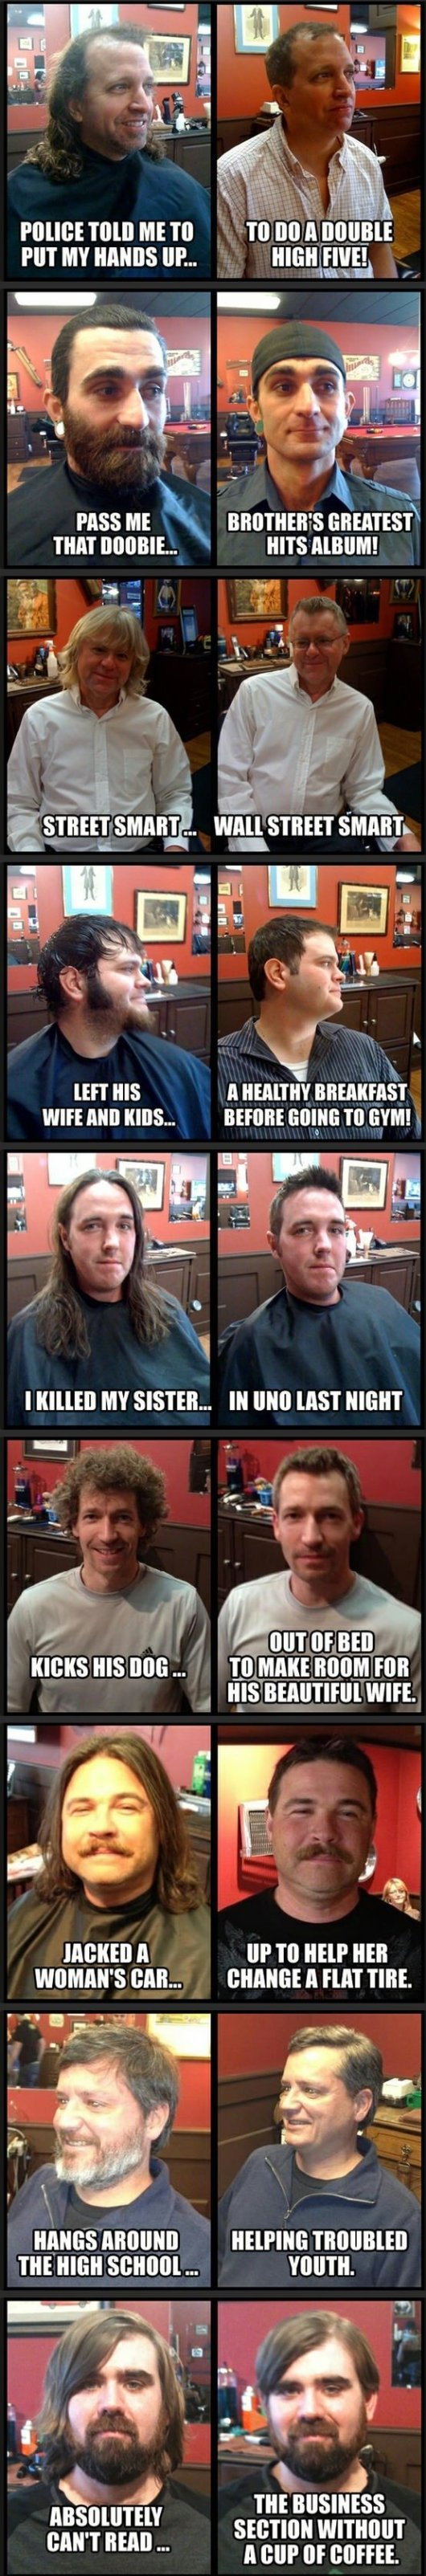 Your+Haircut+Matters_f1550f_4351253